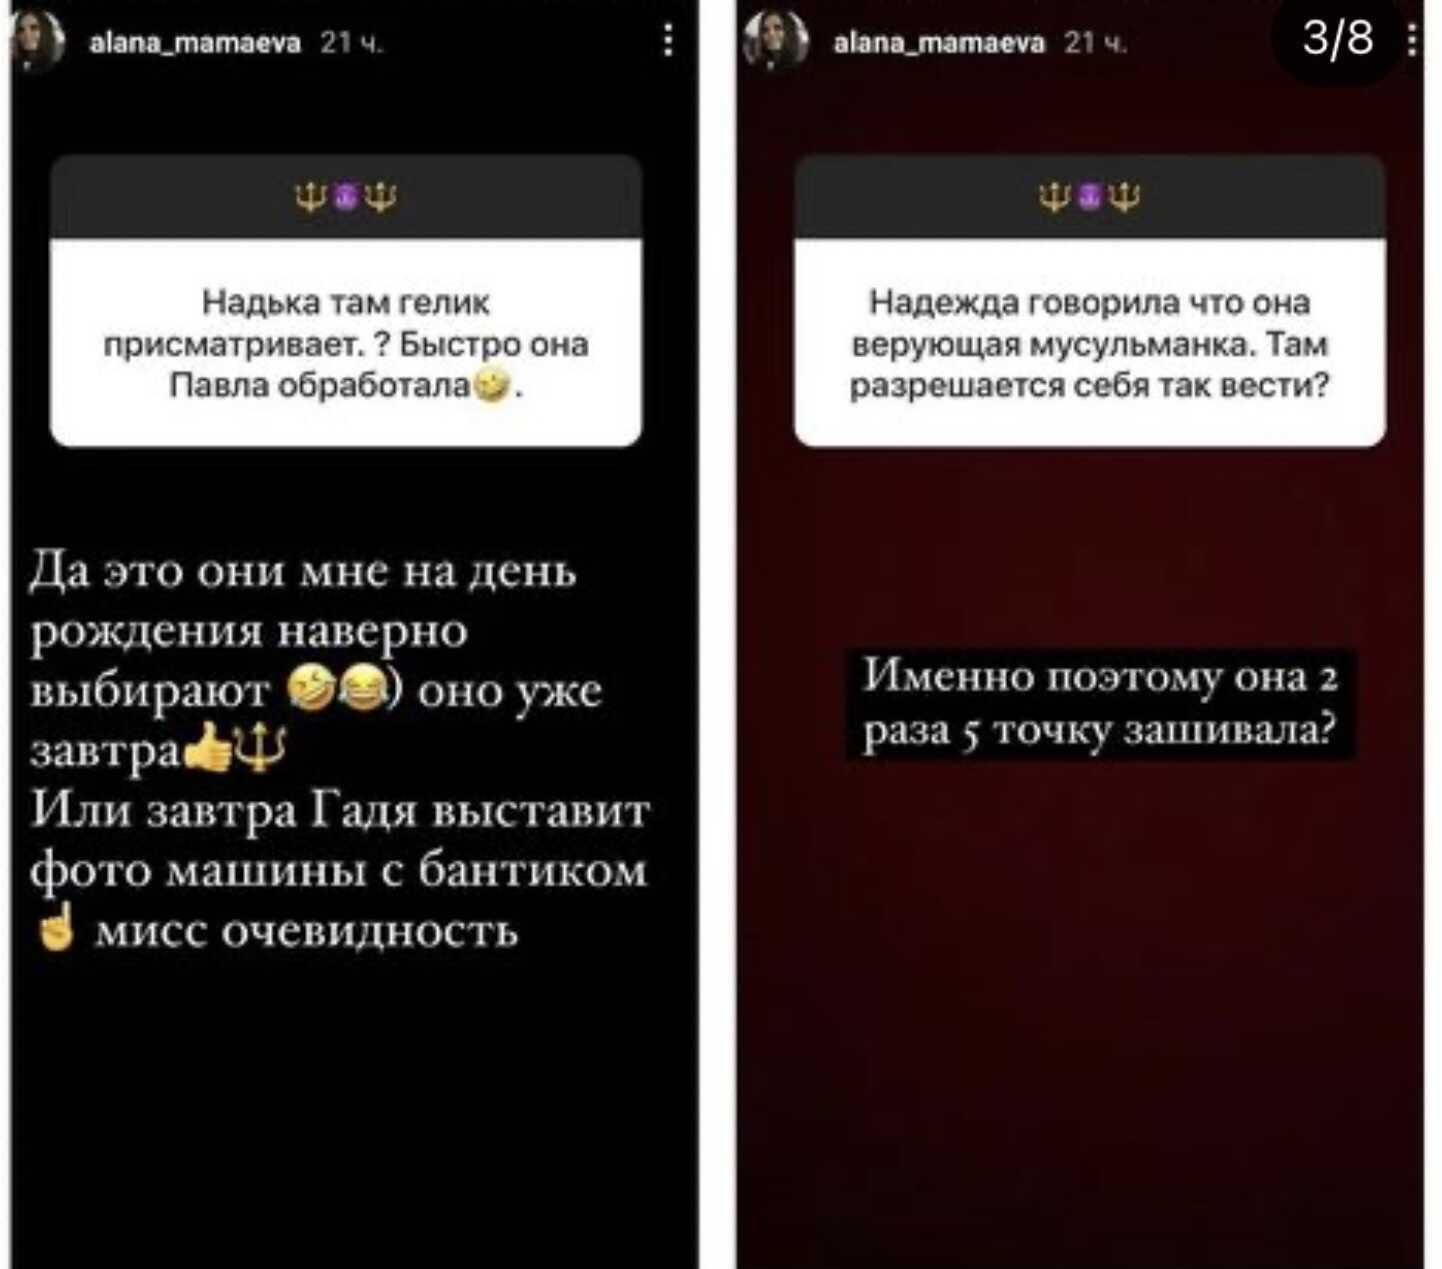 Pavel Mamaev introduced his new mistress to his mother